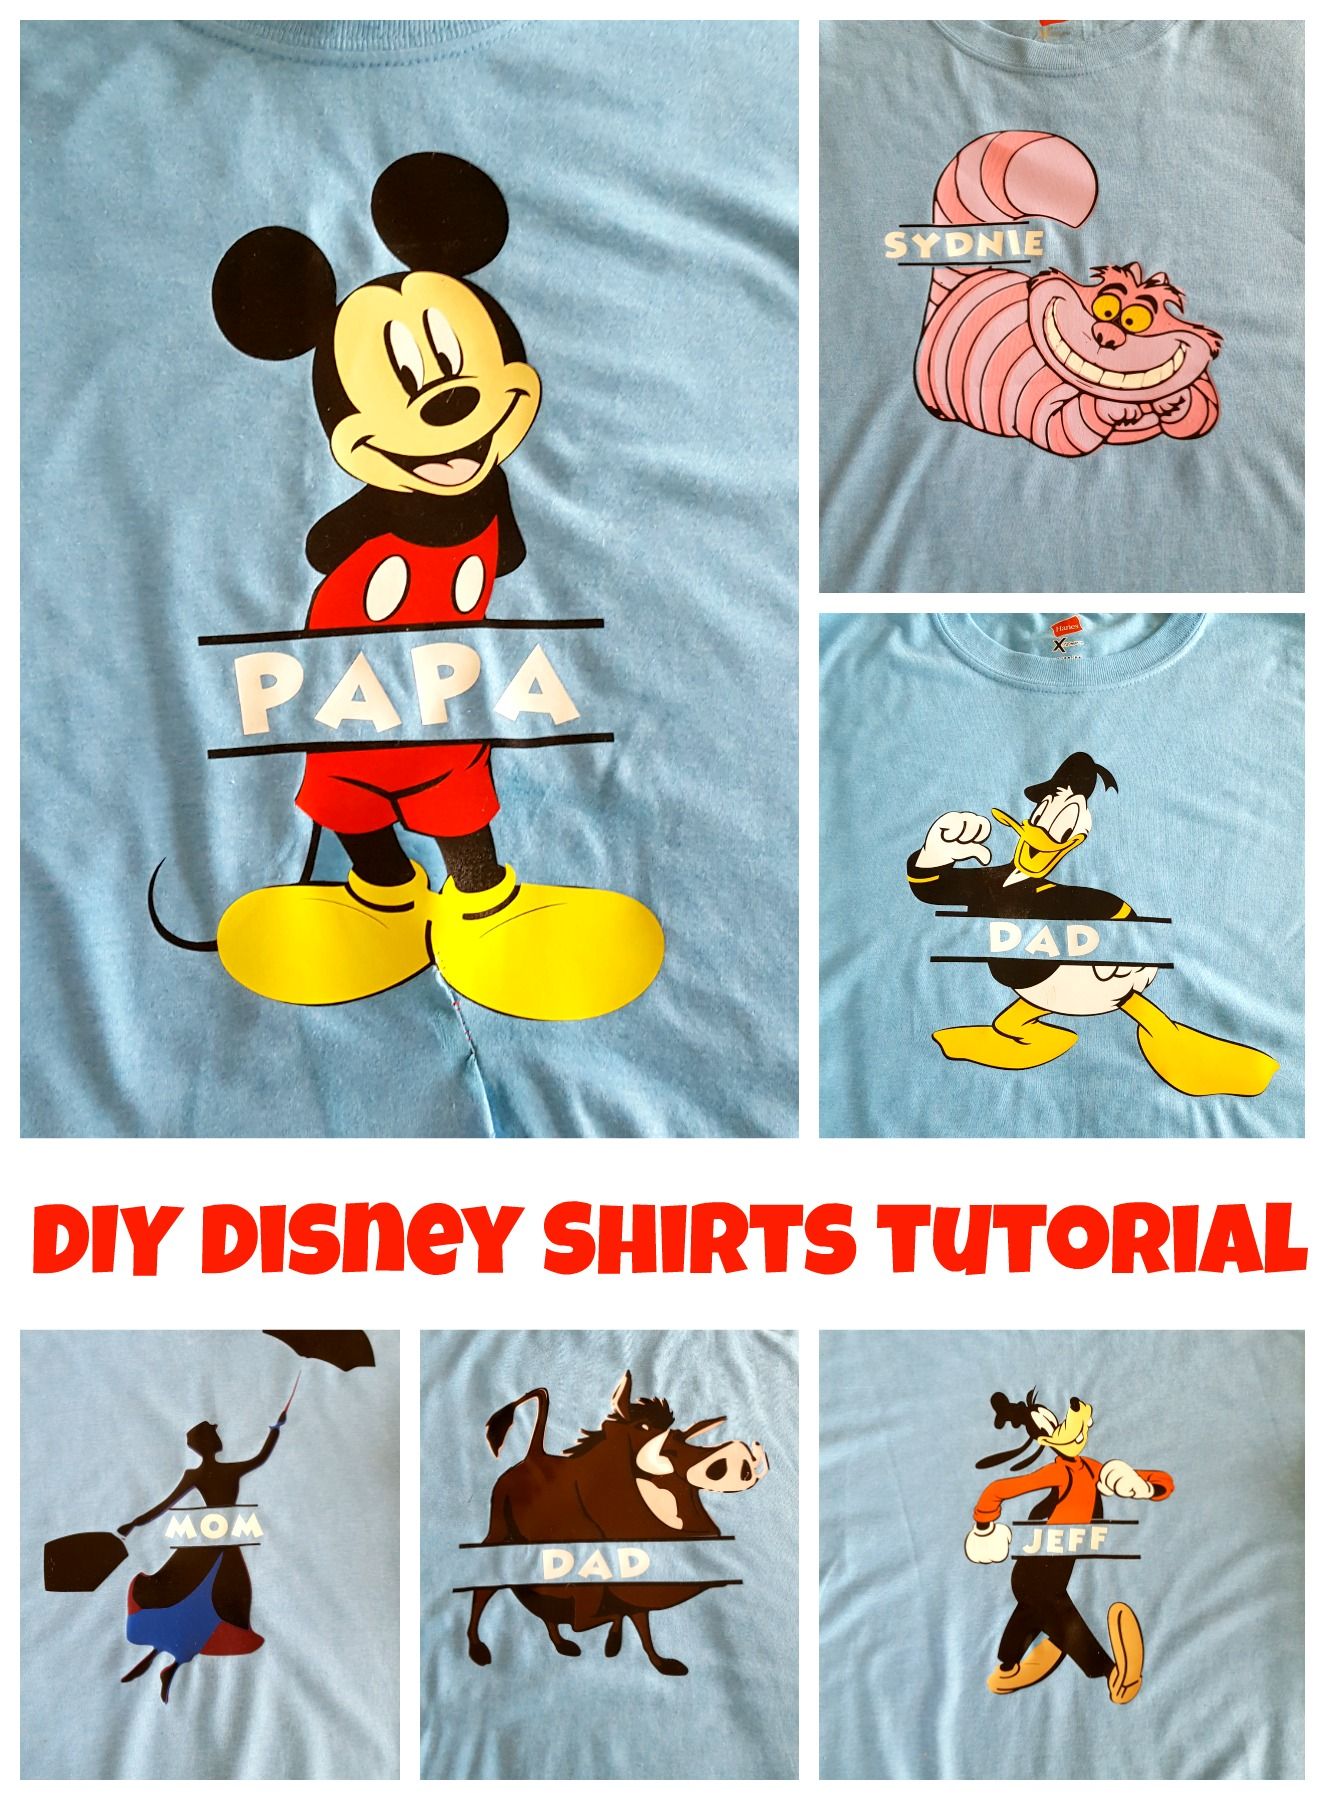 DIY Disney Shirts tutorial layered vinyl